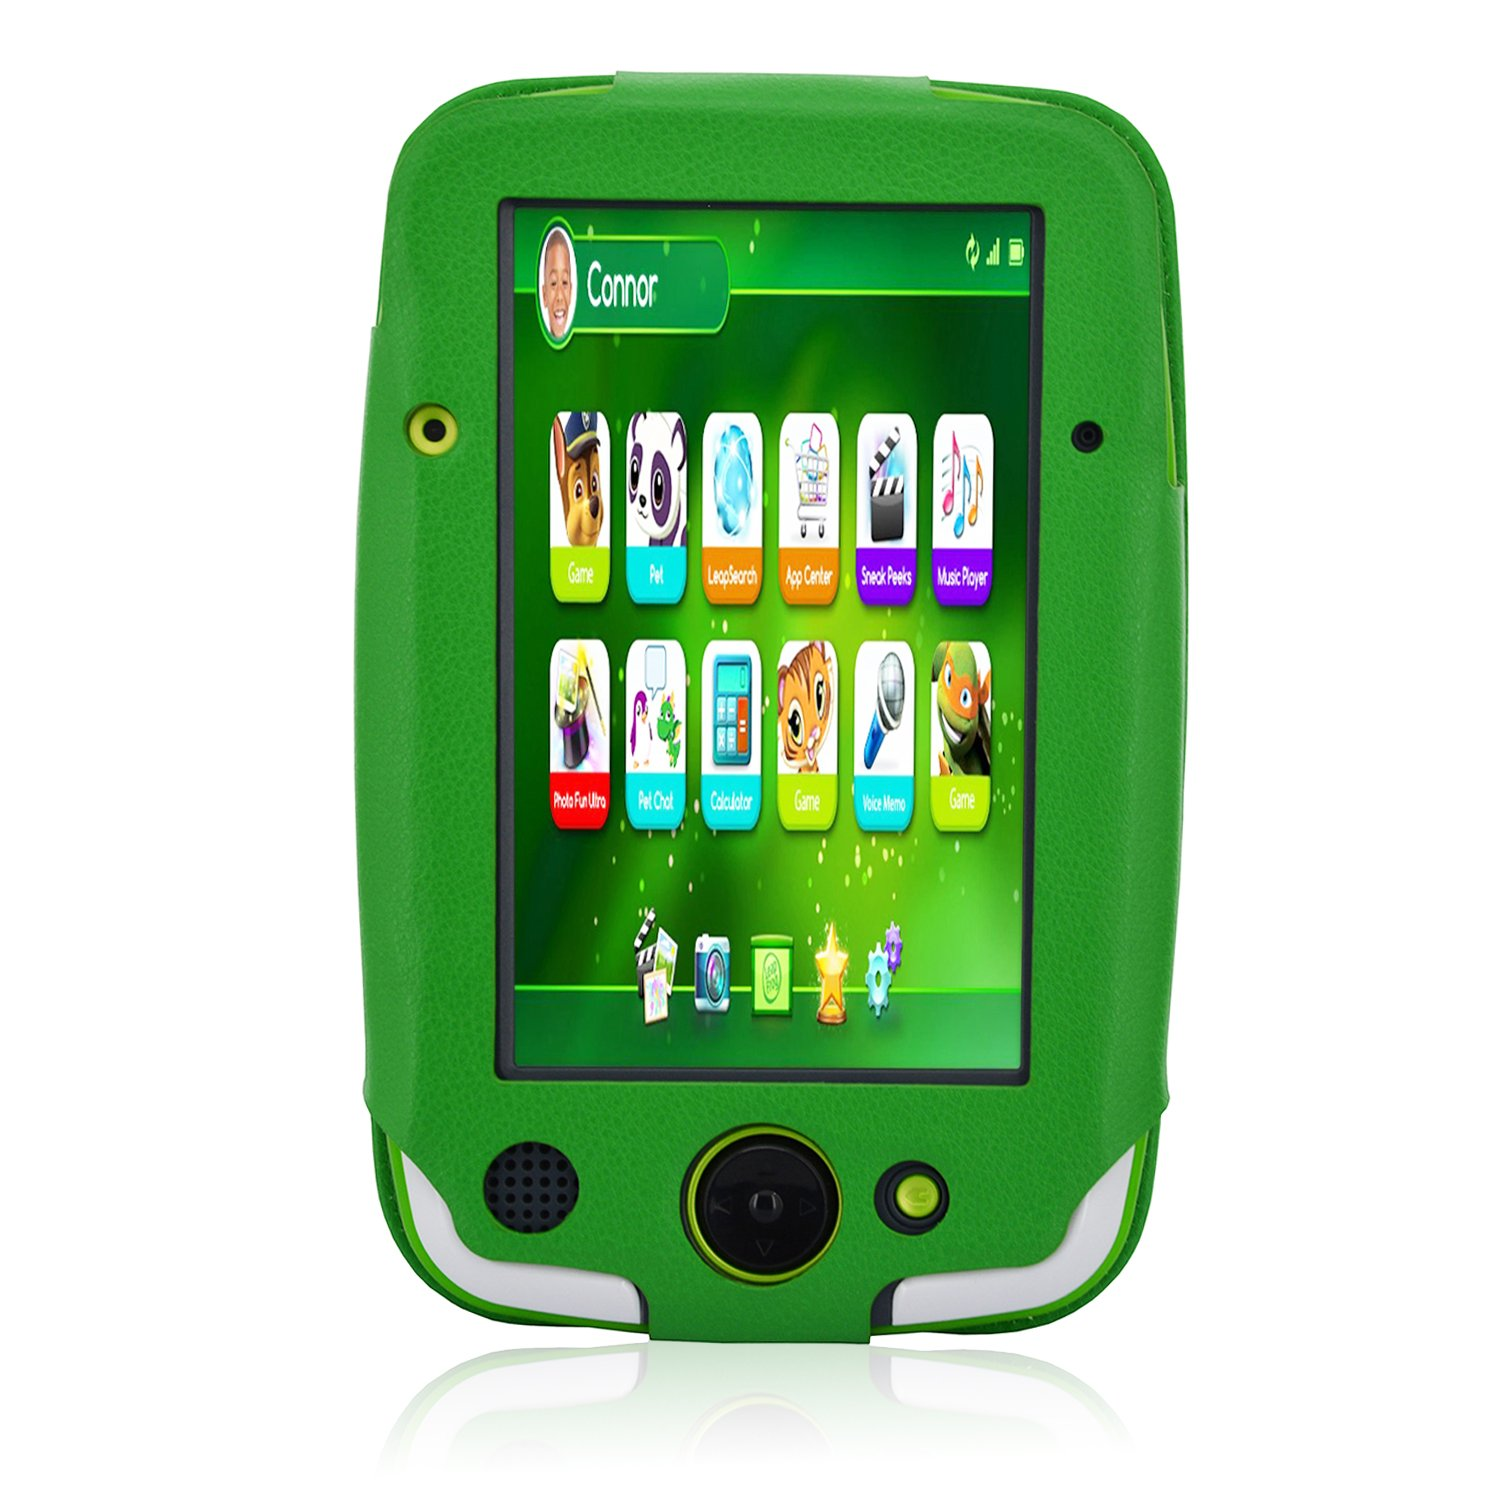 ACdream LeapPad Platinum Case, PU Leather Cover Case for LeapFrog LeapPad Platinum Kids Learning Tablet (NOT FIT LeapPad3), Green by ACdream (Image #7)